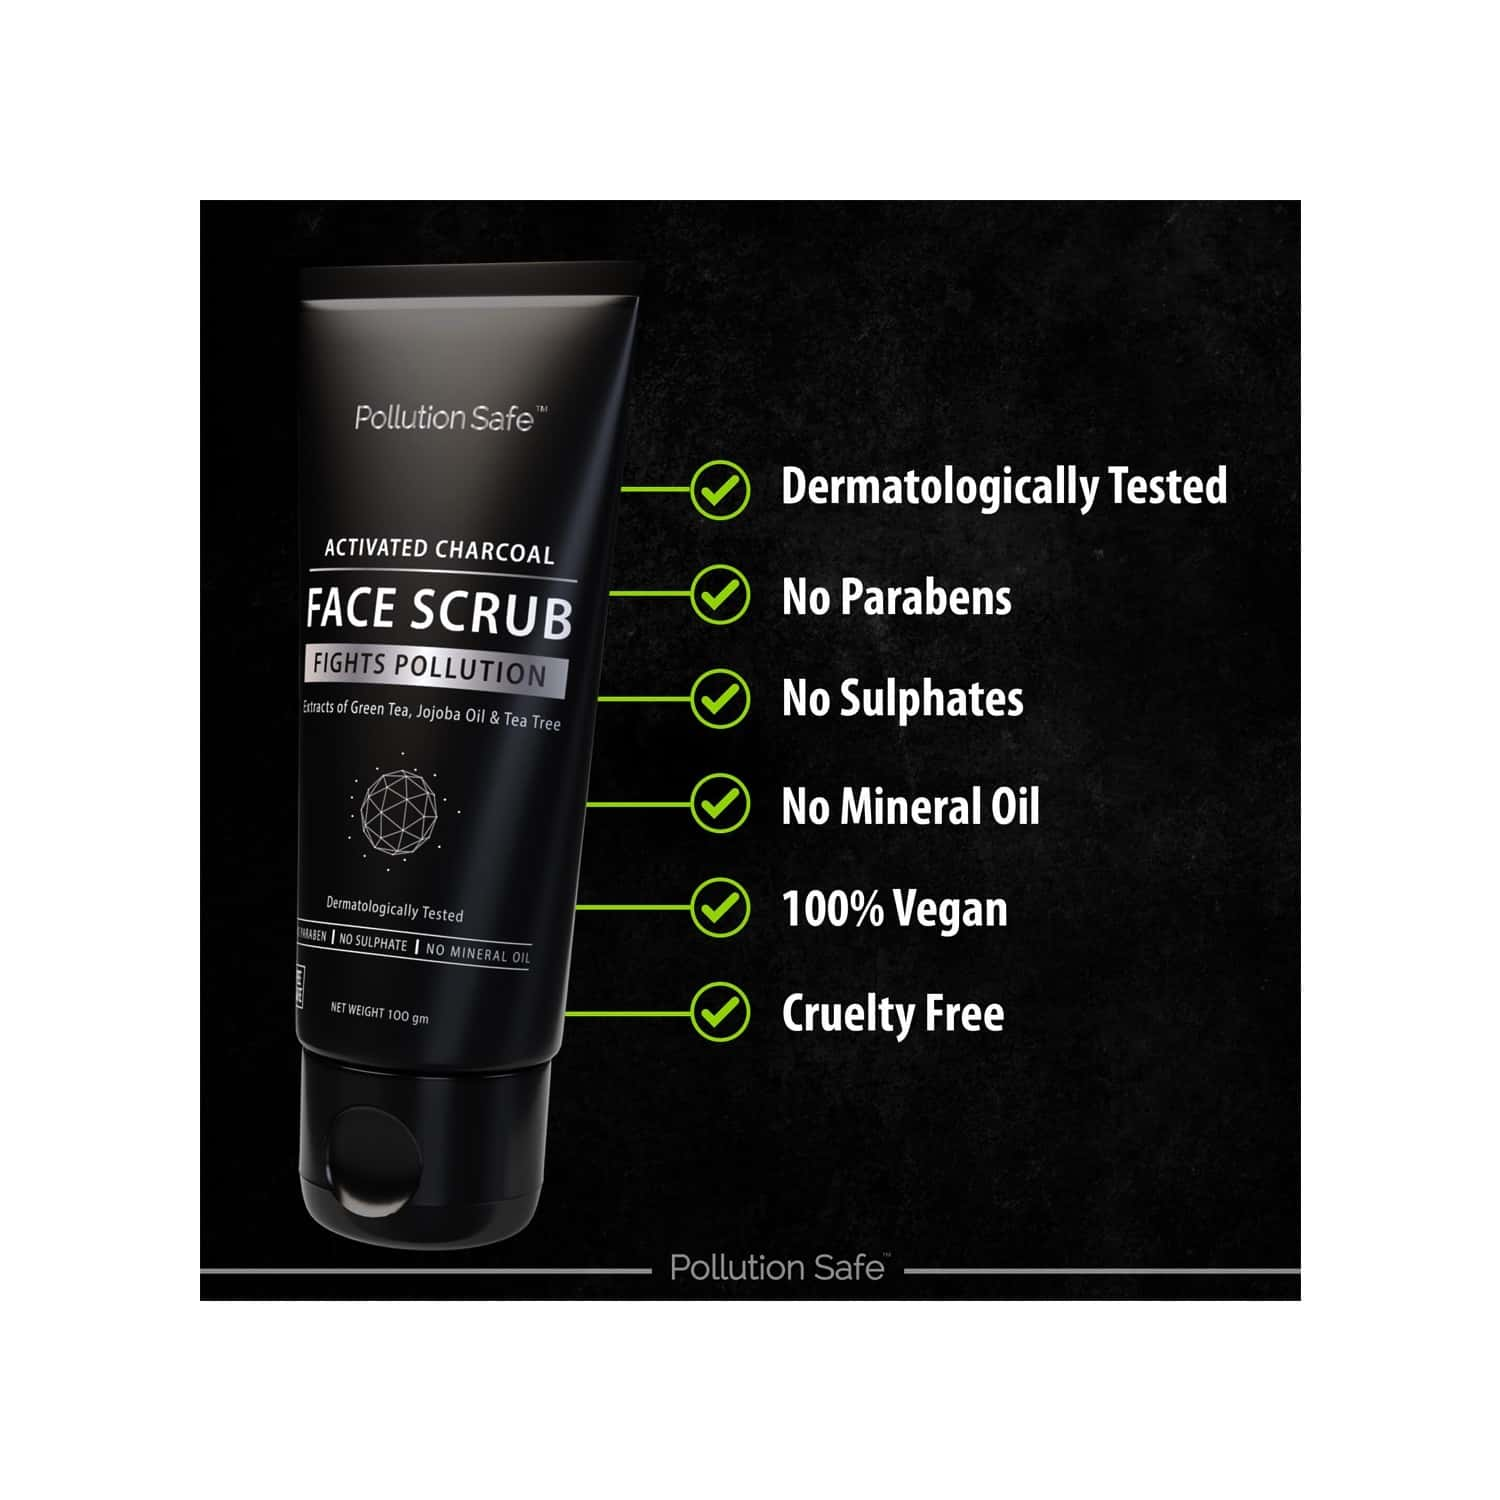 Pollution Safe Activated Charcoal Face Scrub 100gm